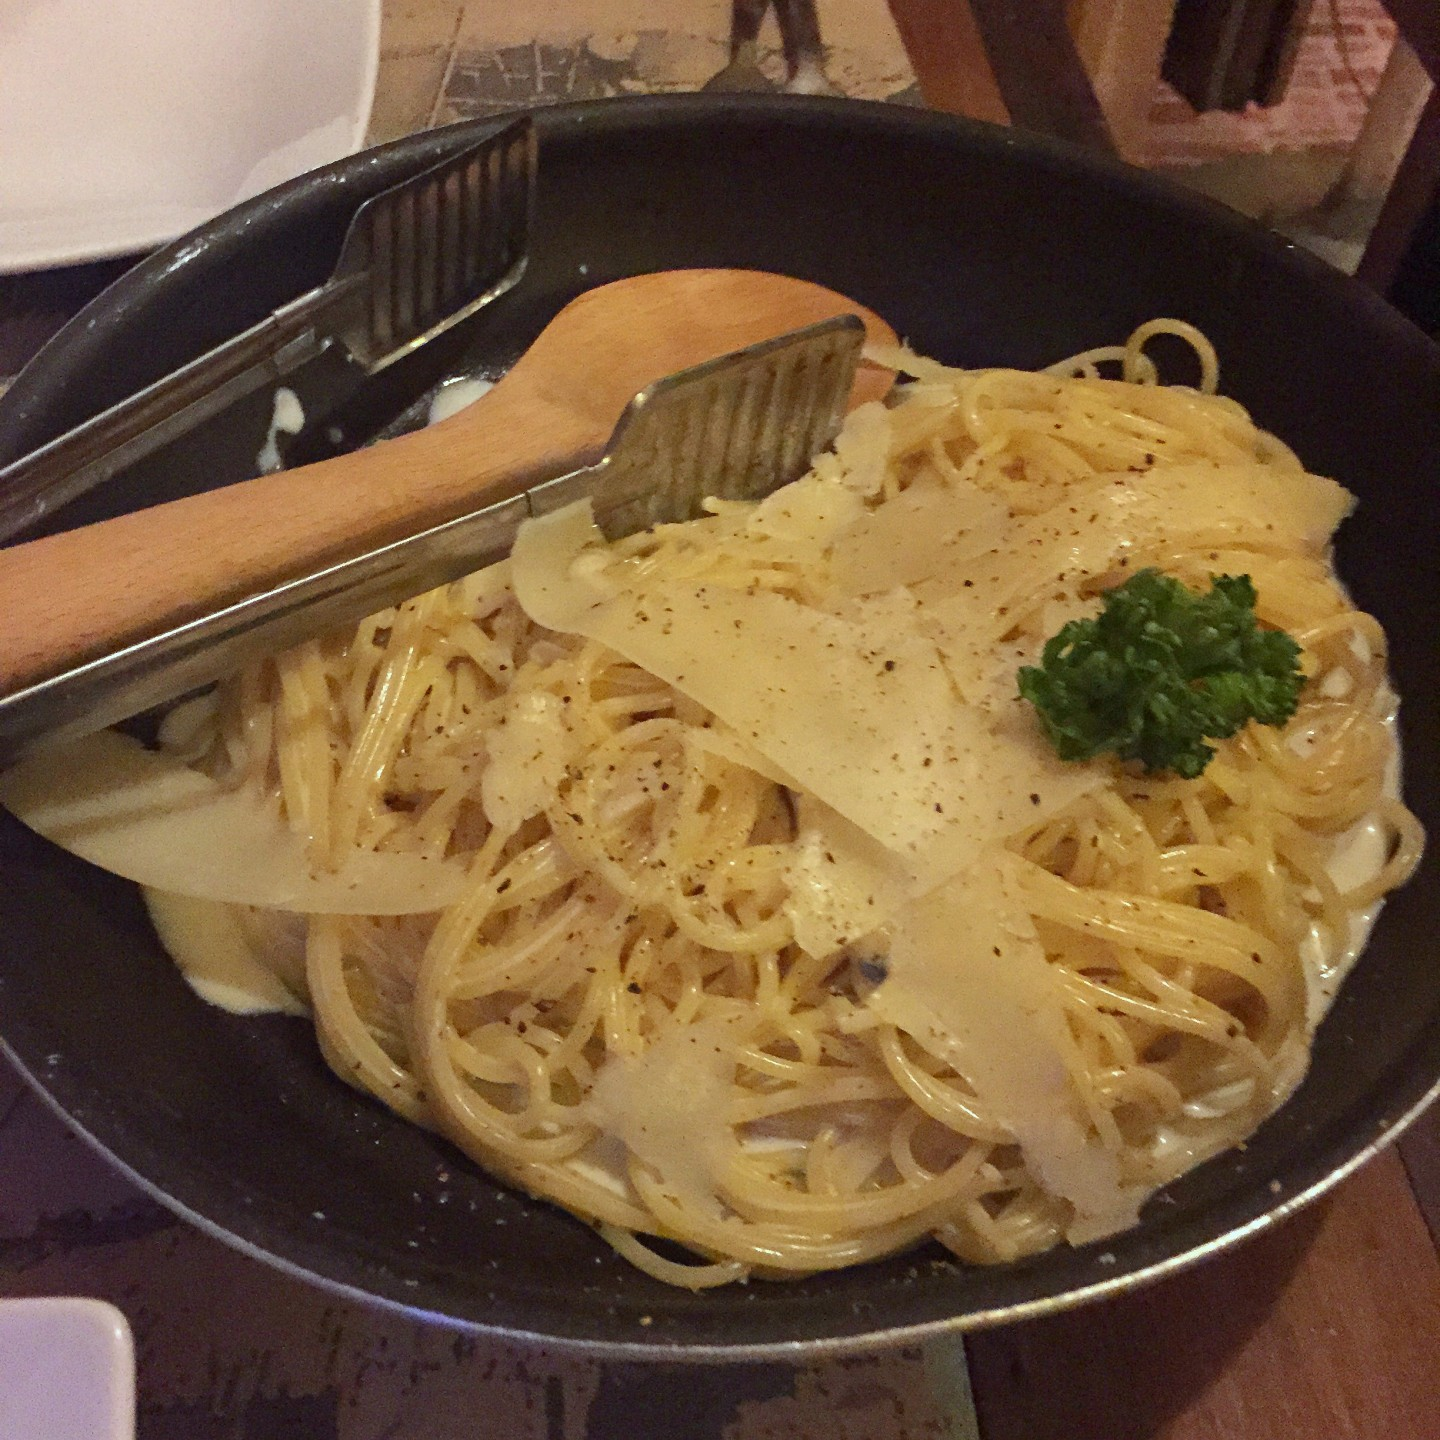 Delicious pasta at Shanti Shanti on the island of Koh Lanta in Thailand.